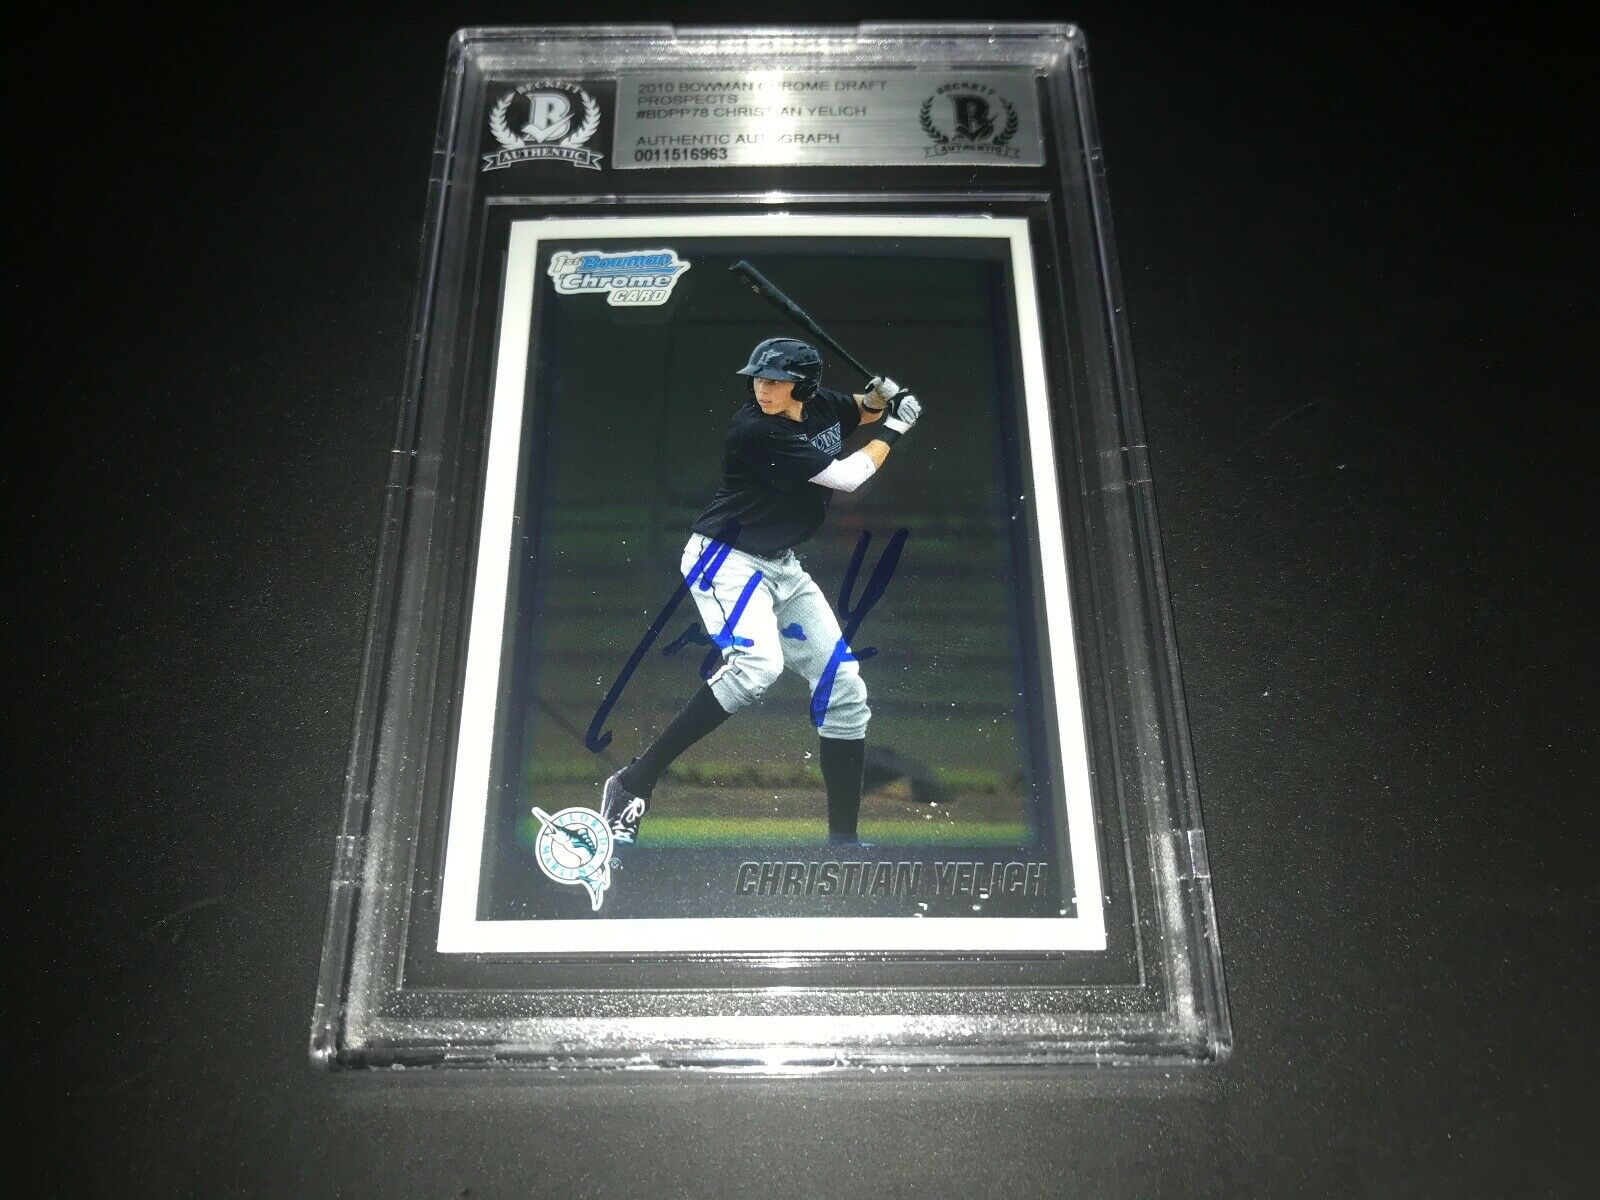 Christian Yelich Brewers IP SIGNED 2010 BOWMAN CHROME DRAFT BECKETT CERTIFIED S